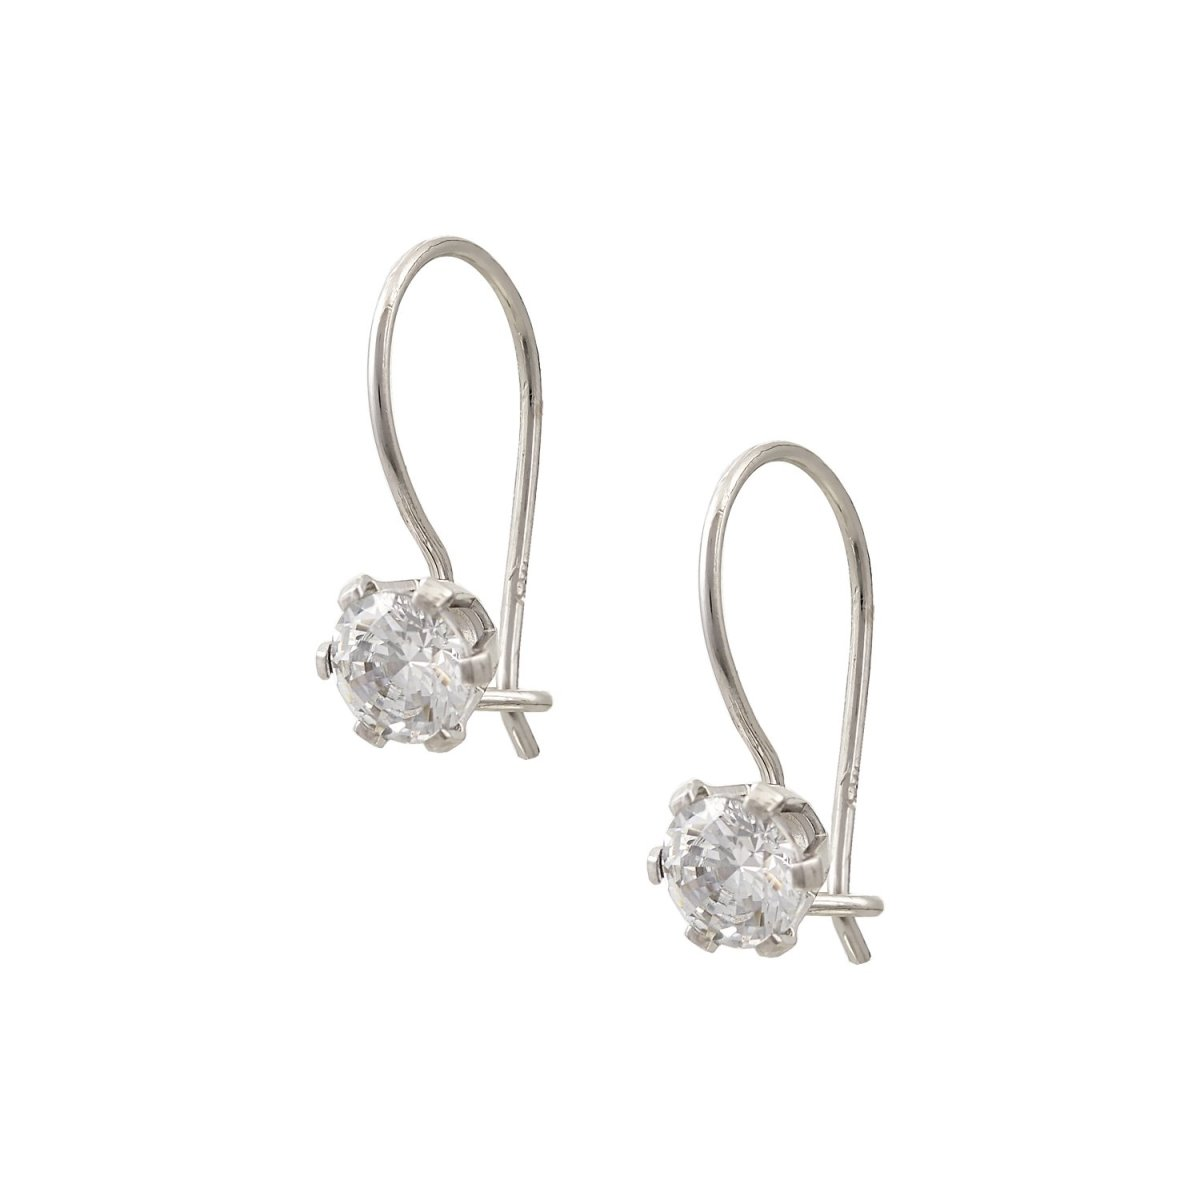 Pendant Earrings SK3500W Made of White Gold K14 with Zircon - Goldy Jewelry Store